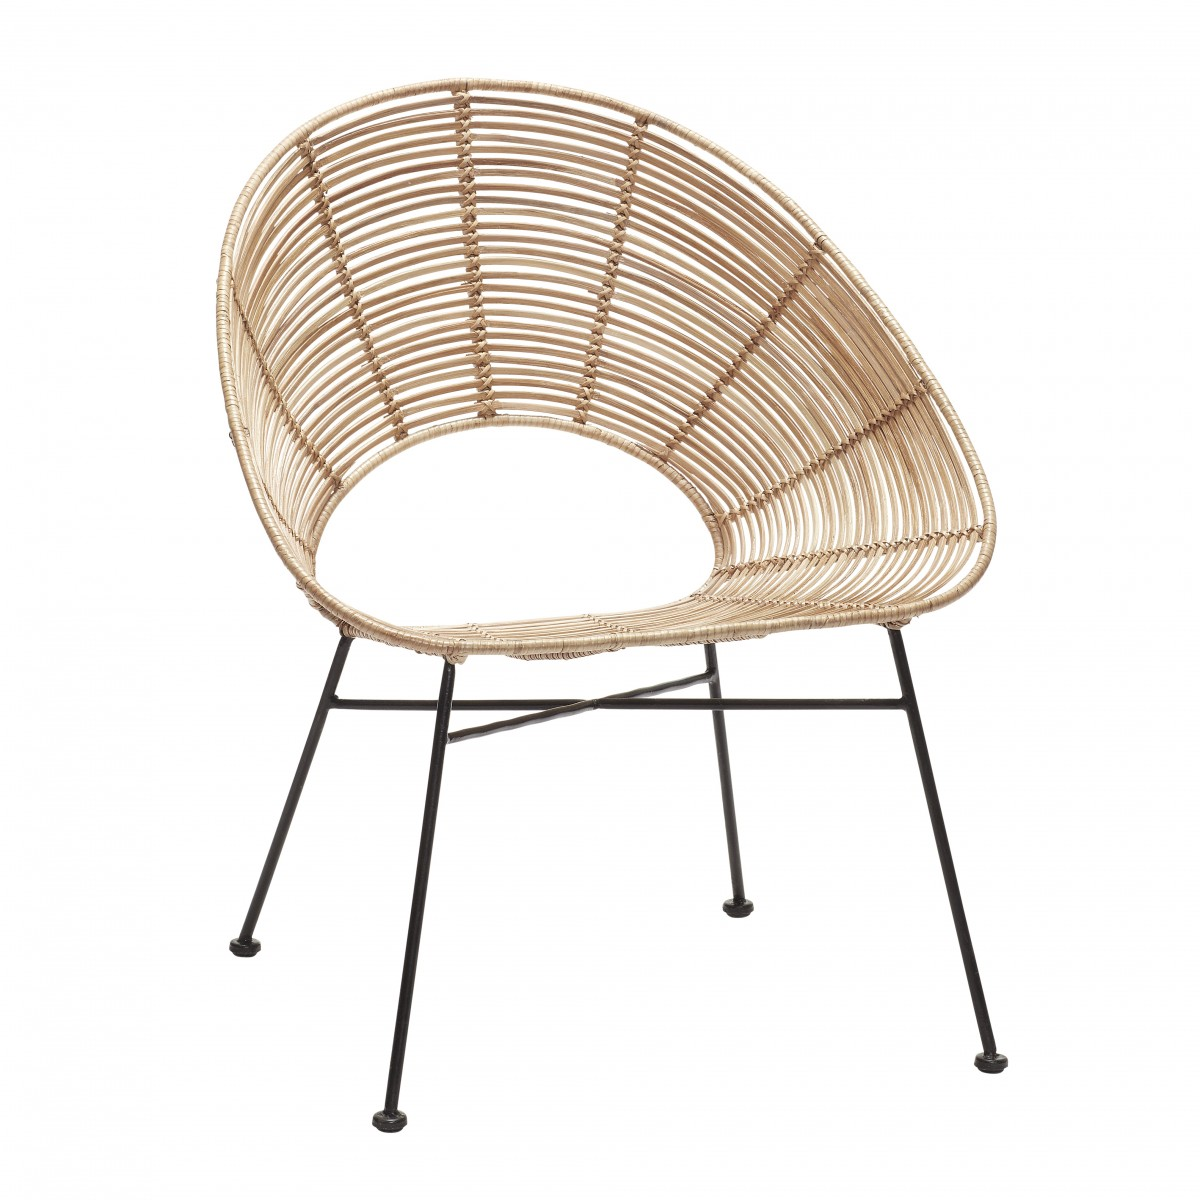 Round Armchair In Natural Rattan. Loading Zoom